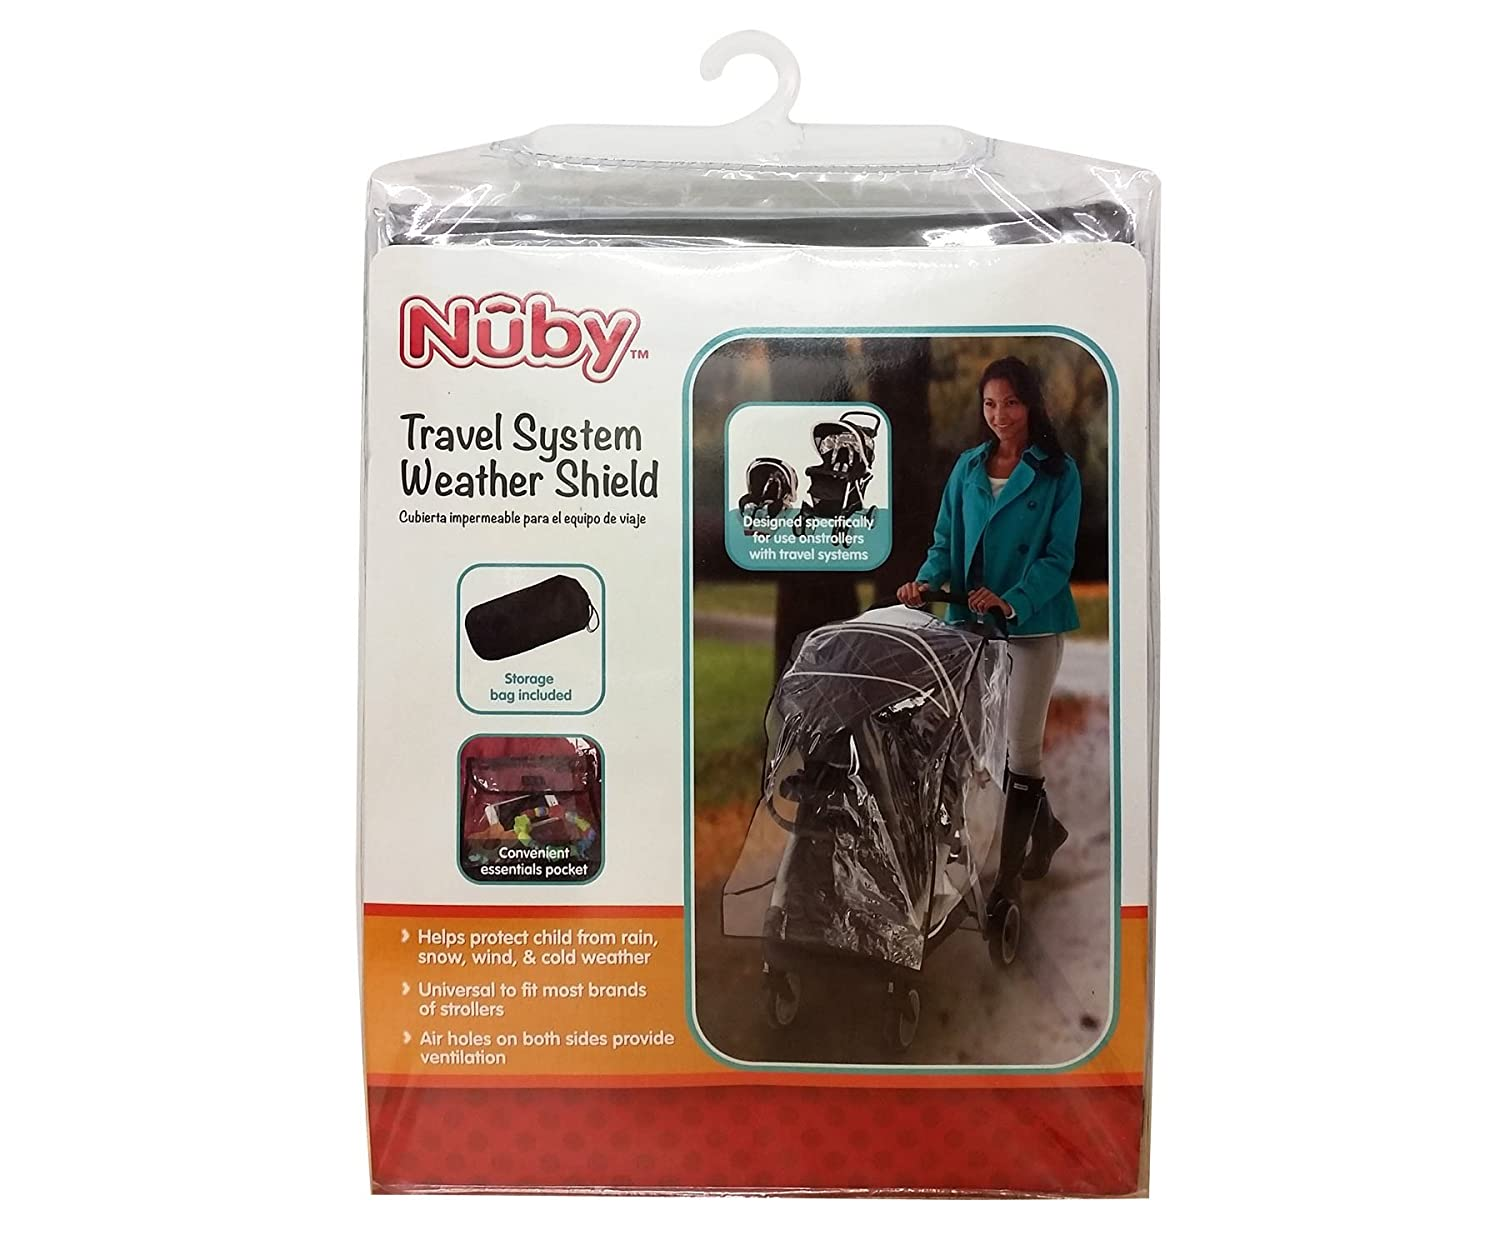 Nuby Travel System Weather Shield Clear Plastic